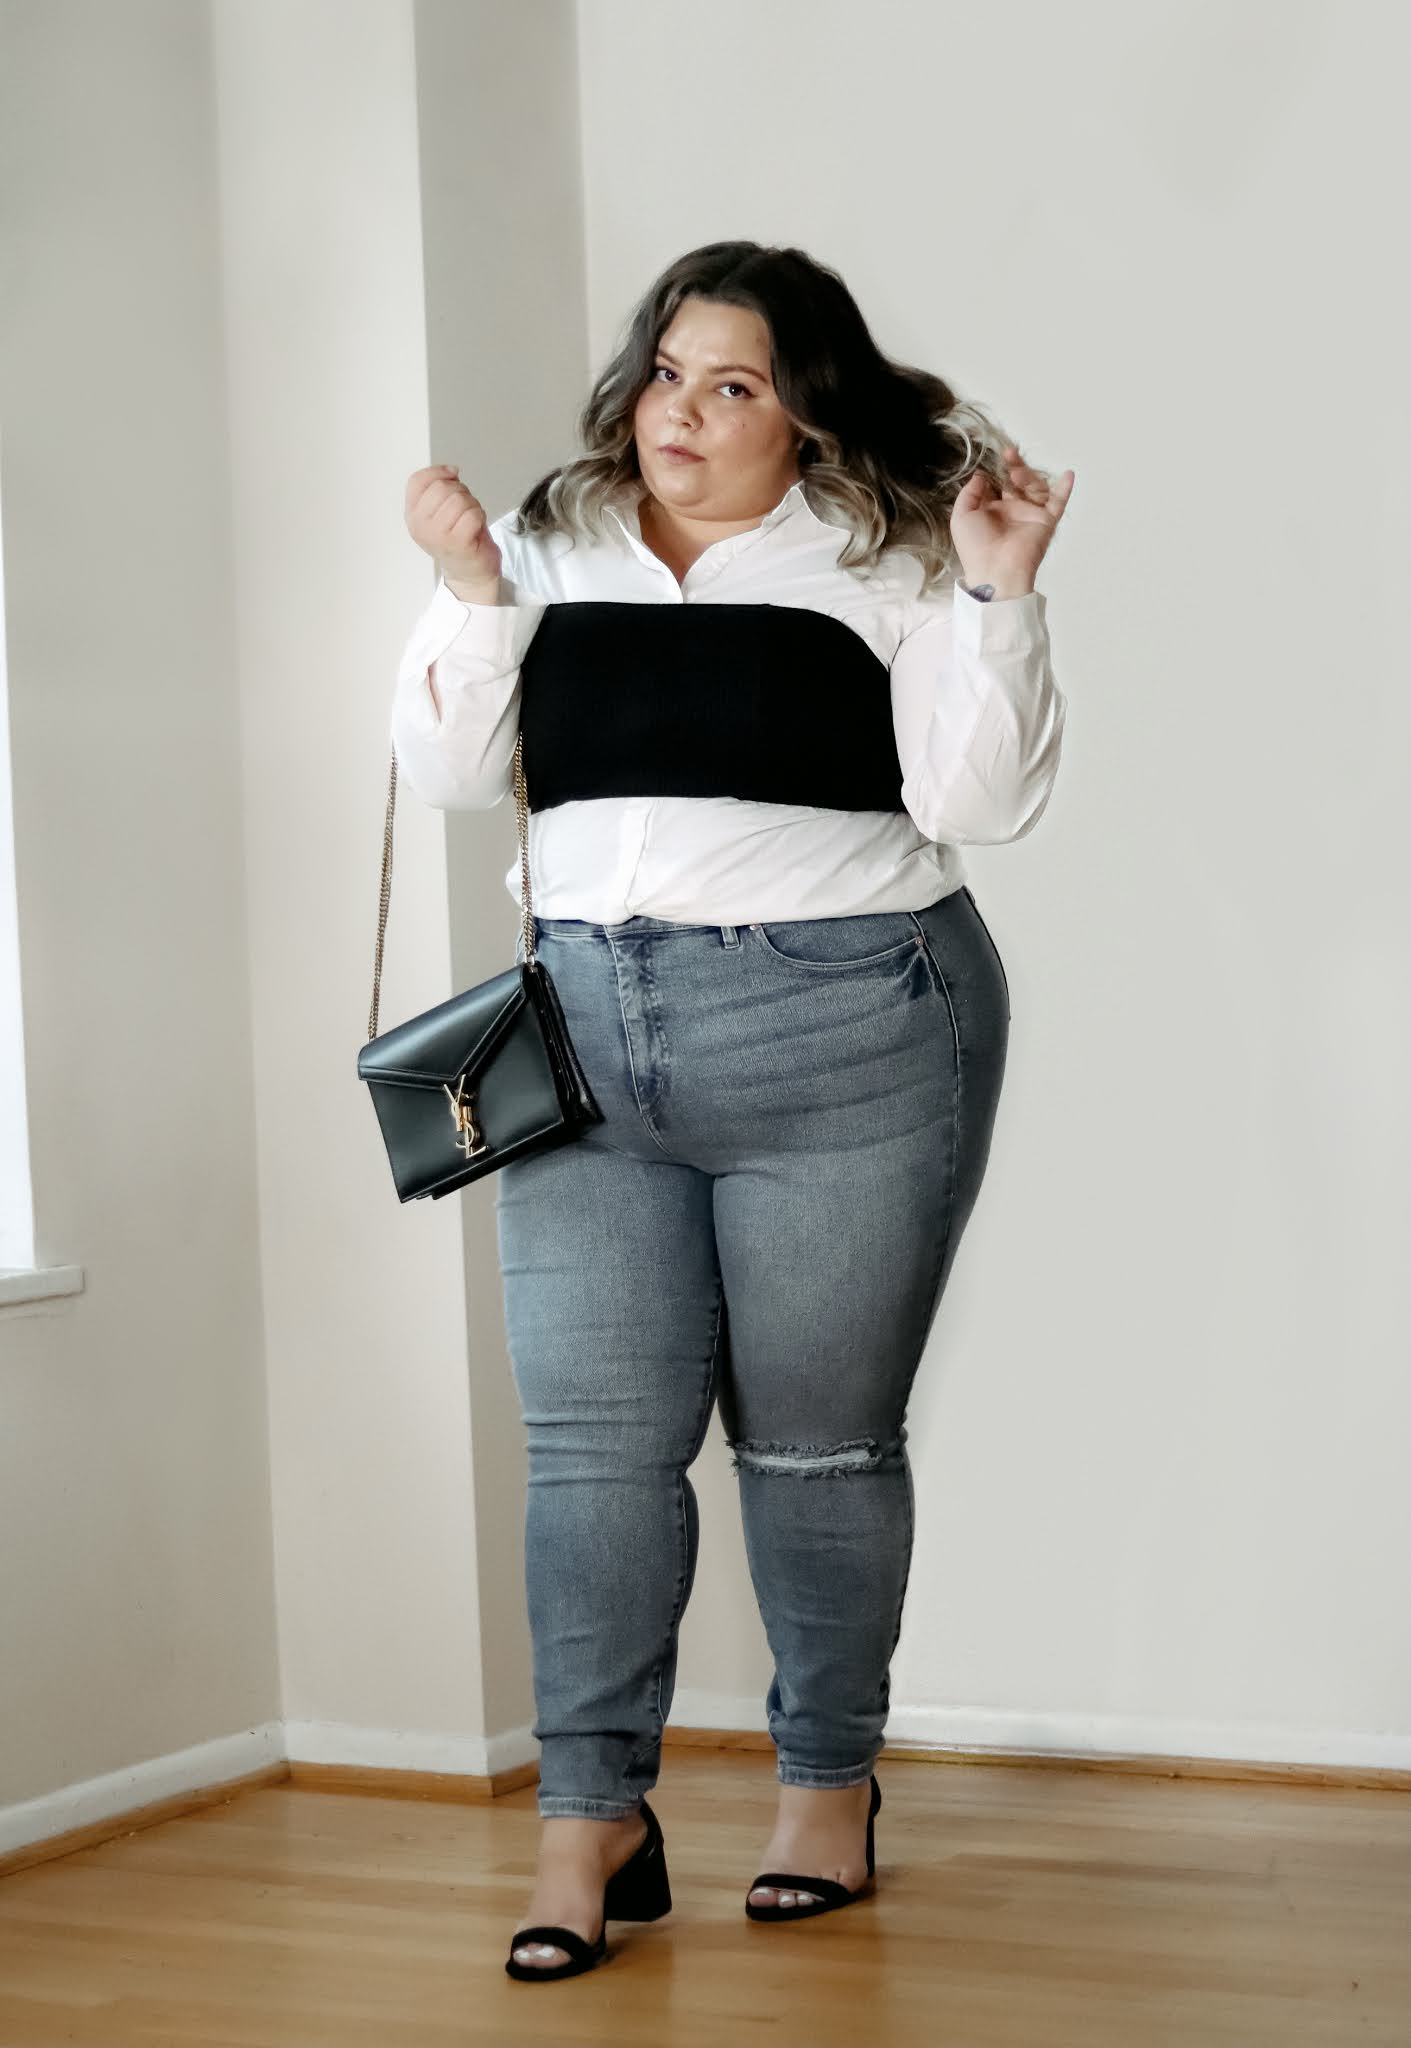 Chicago Plus Size Petite Fashion Blogger Natalie in the City reviews skinny jeans and cute quarantine outfits